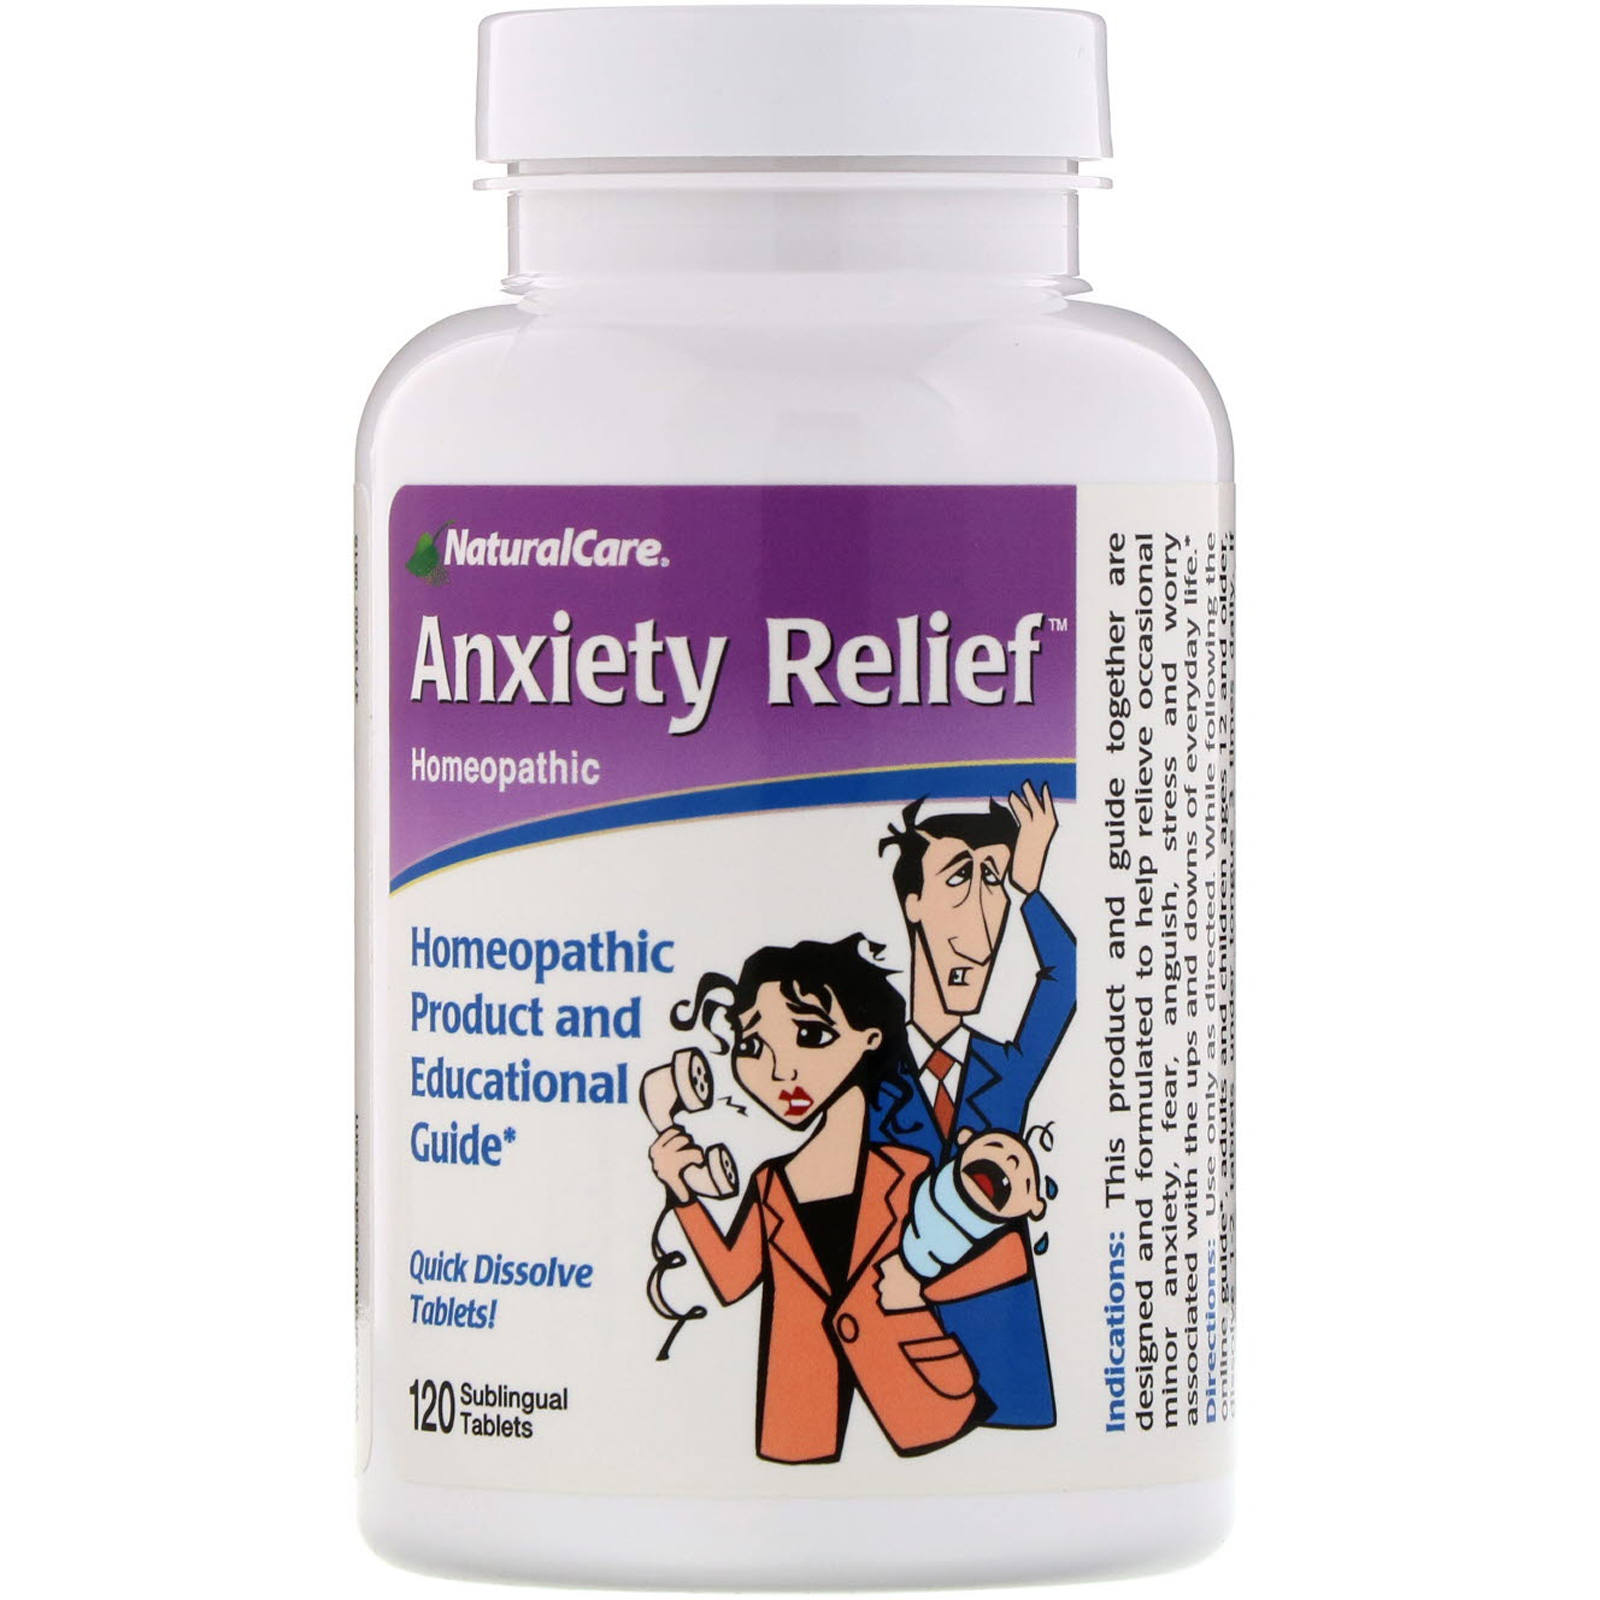 NaturalCare, Anxiety Relief, 120 Sublingual Tablets - iHerb com